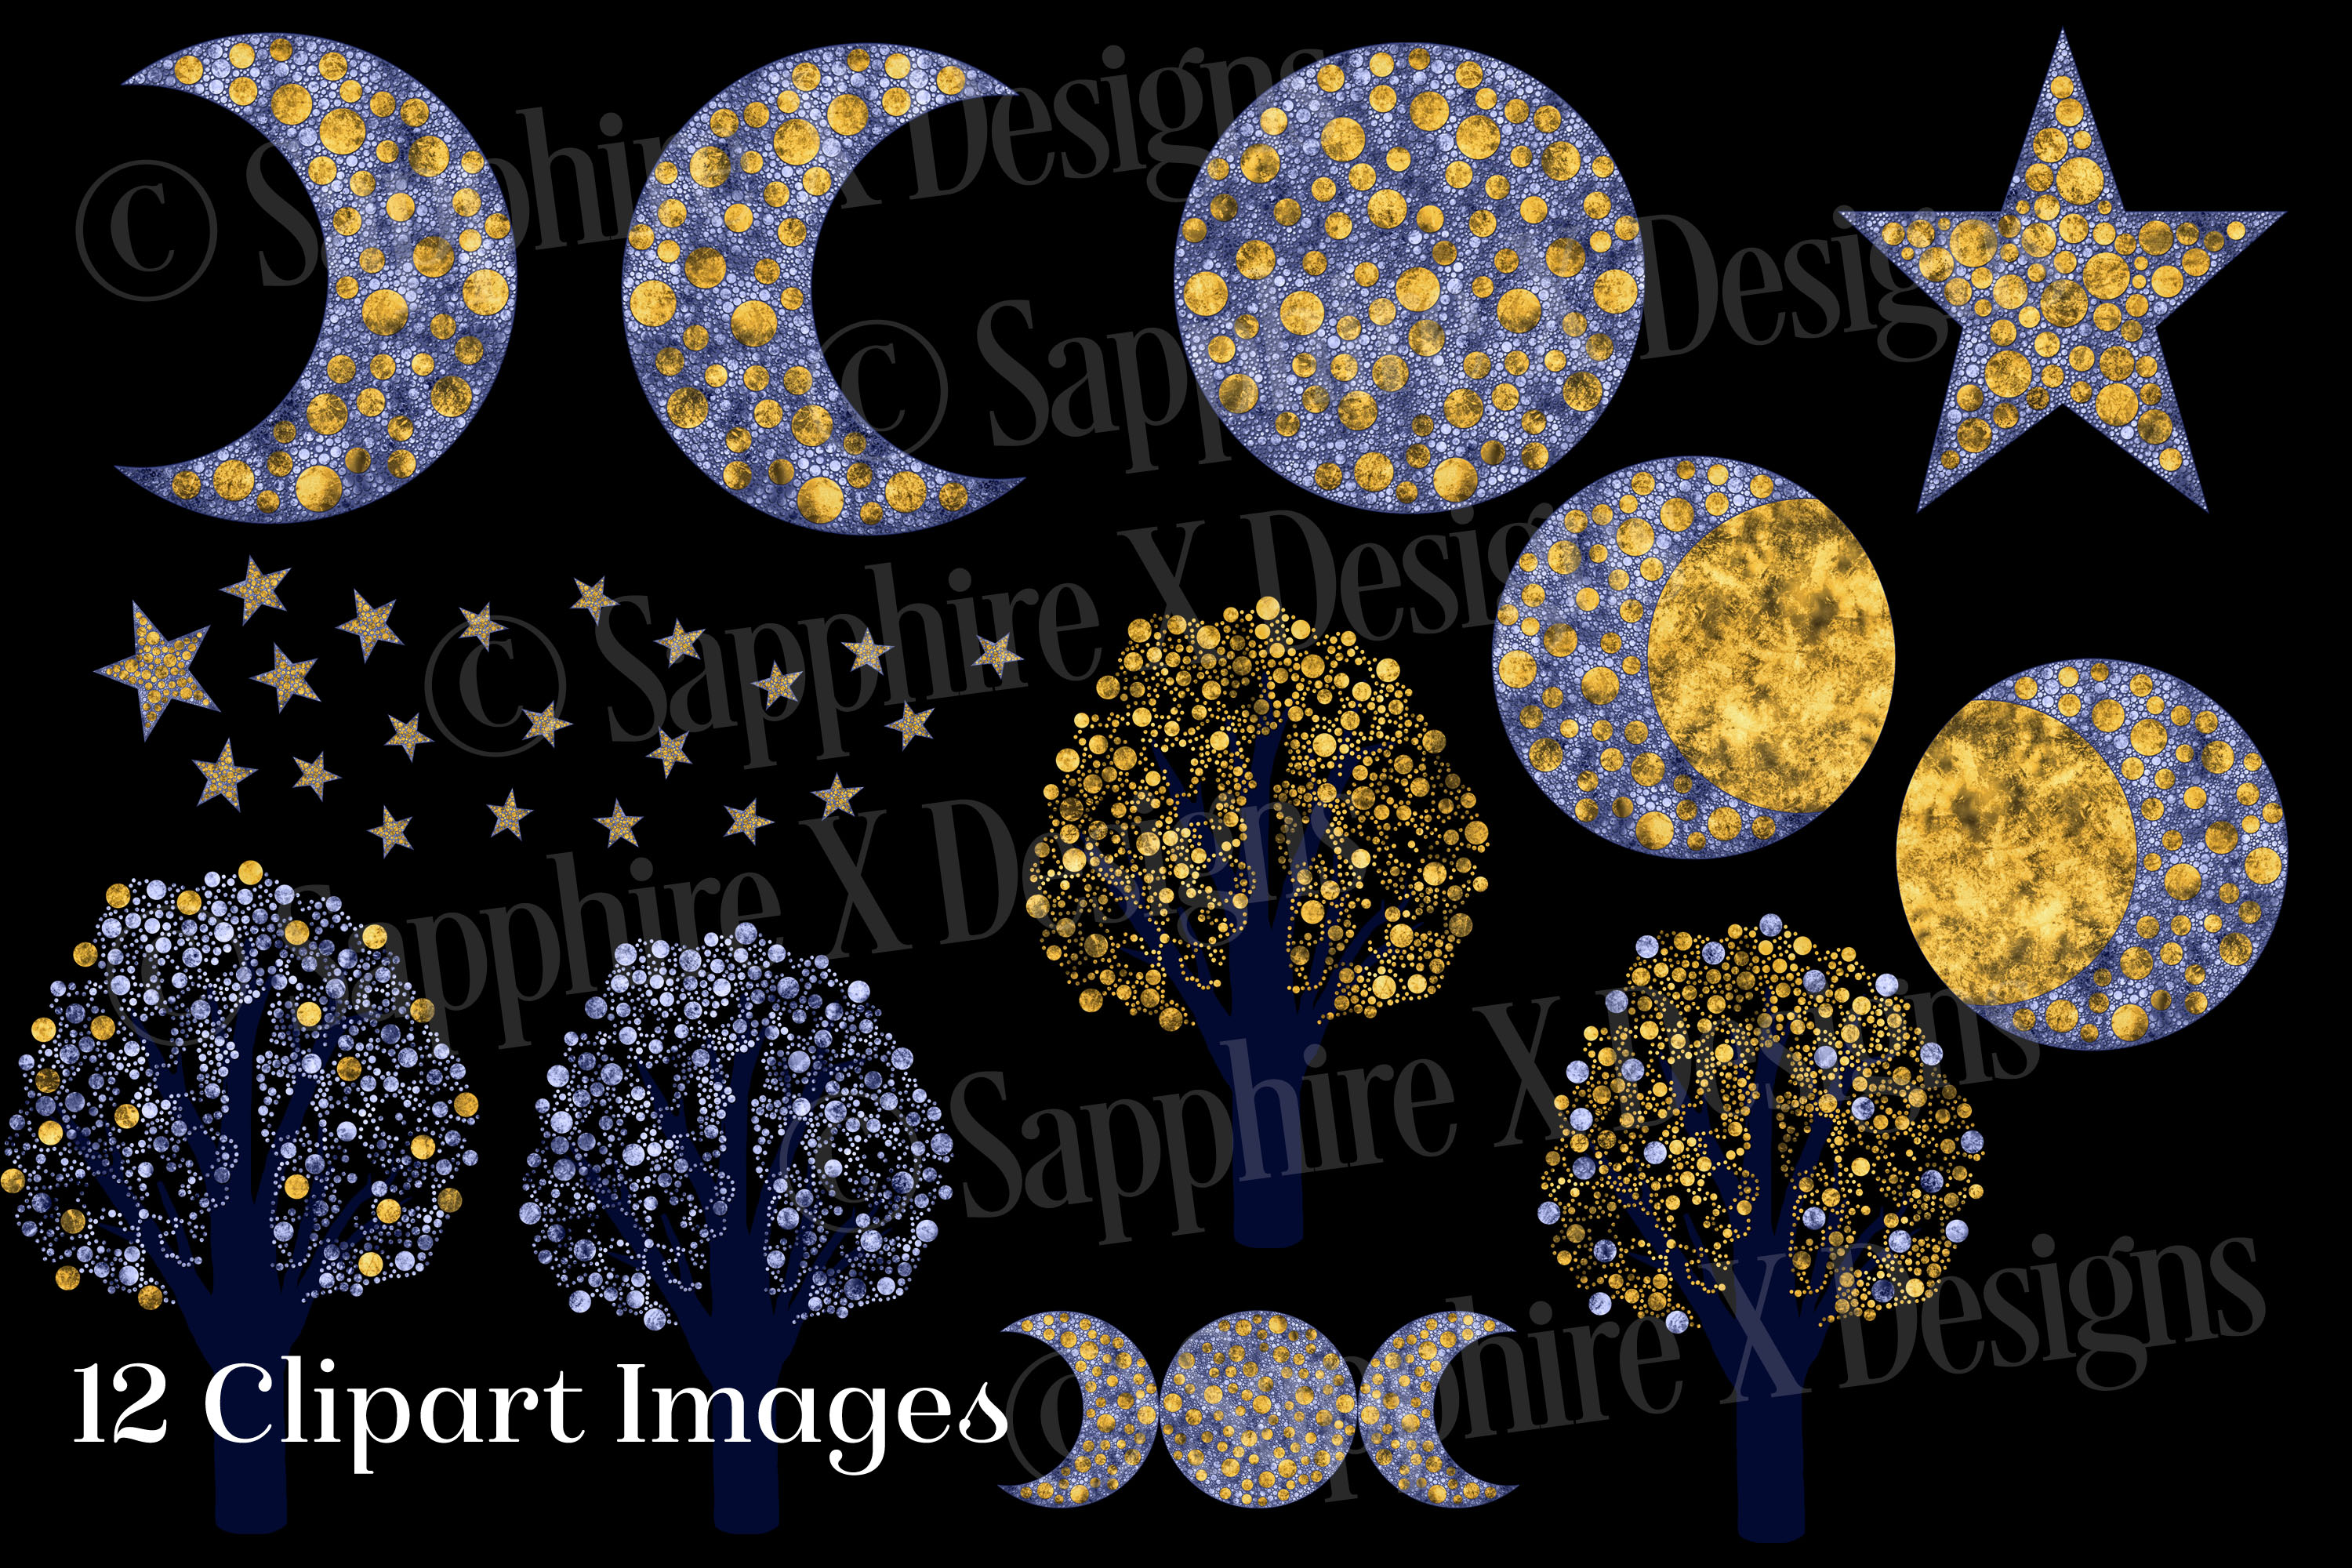 Celestial Sky - 12 PNG Clipart Images example image 2